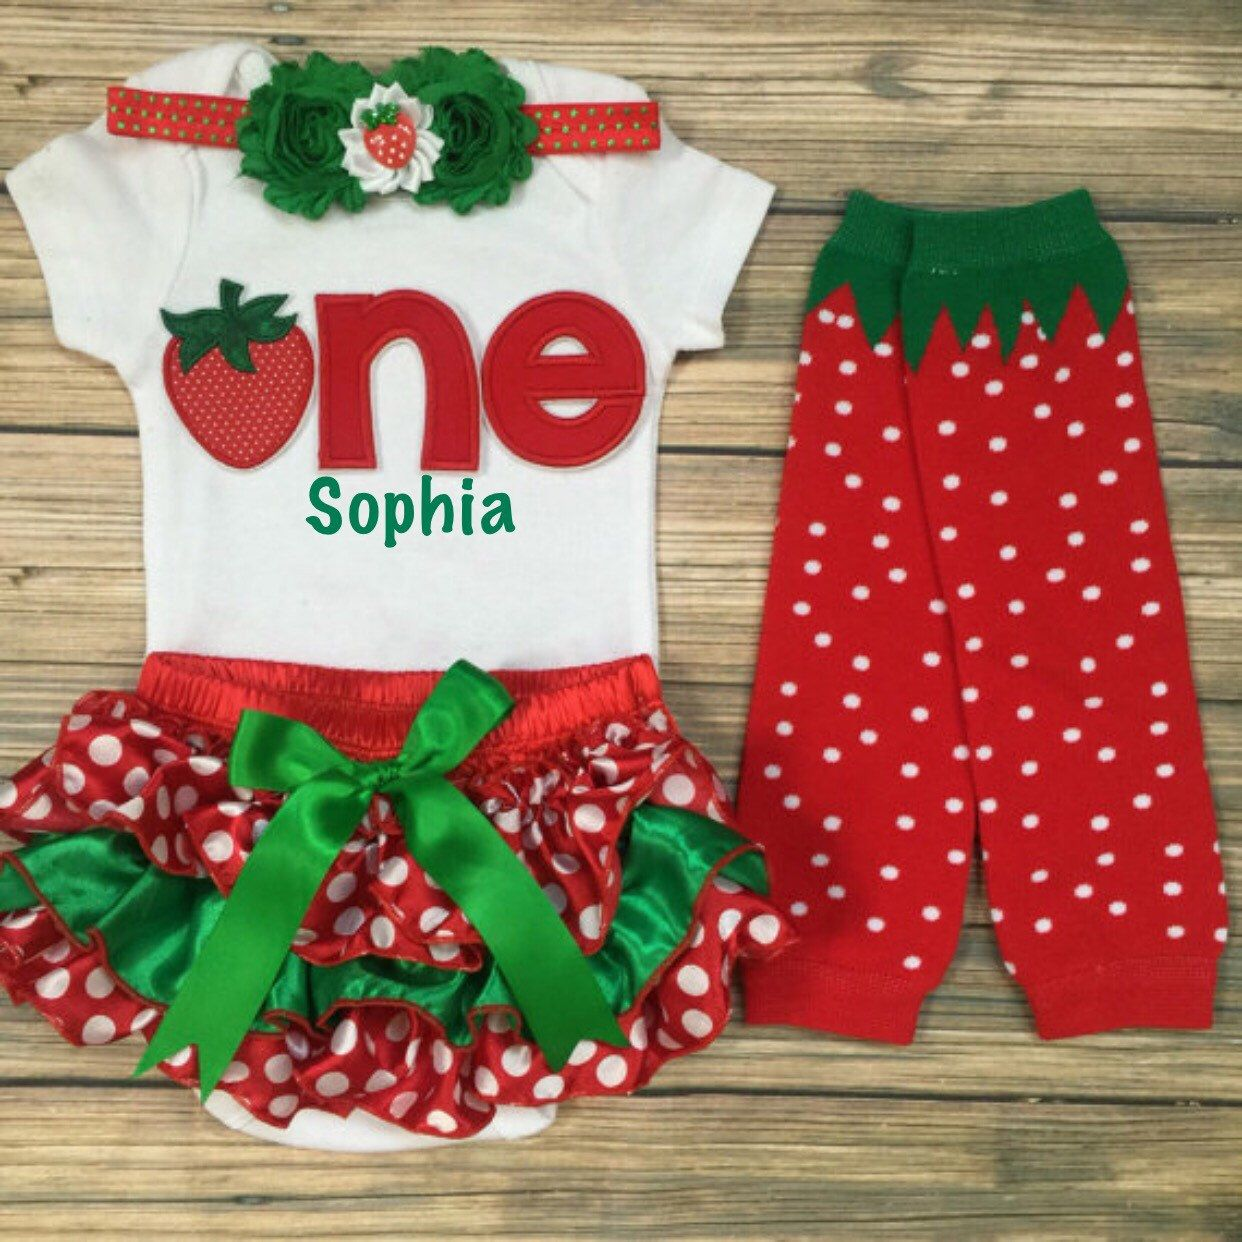 Strawberry Birthday/Red Green Bloomer/Birthday Bloomer set/First Birthday outfit/Strawberry LegWarmer/ONE birthday/CakeSmash/PhotoProp by BabyTrendzz on Etsy https://www.etsy.com/listing/240530058/strawberry-birthdayred-green